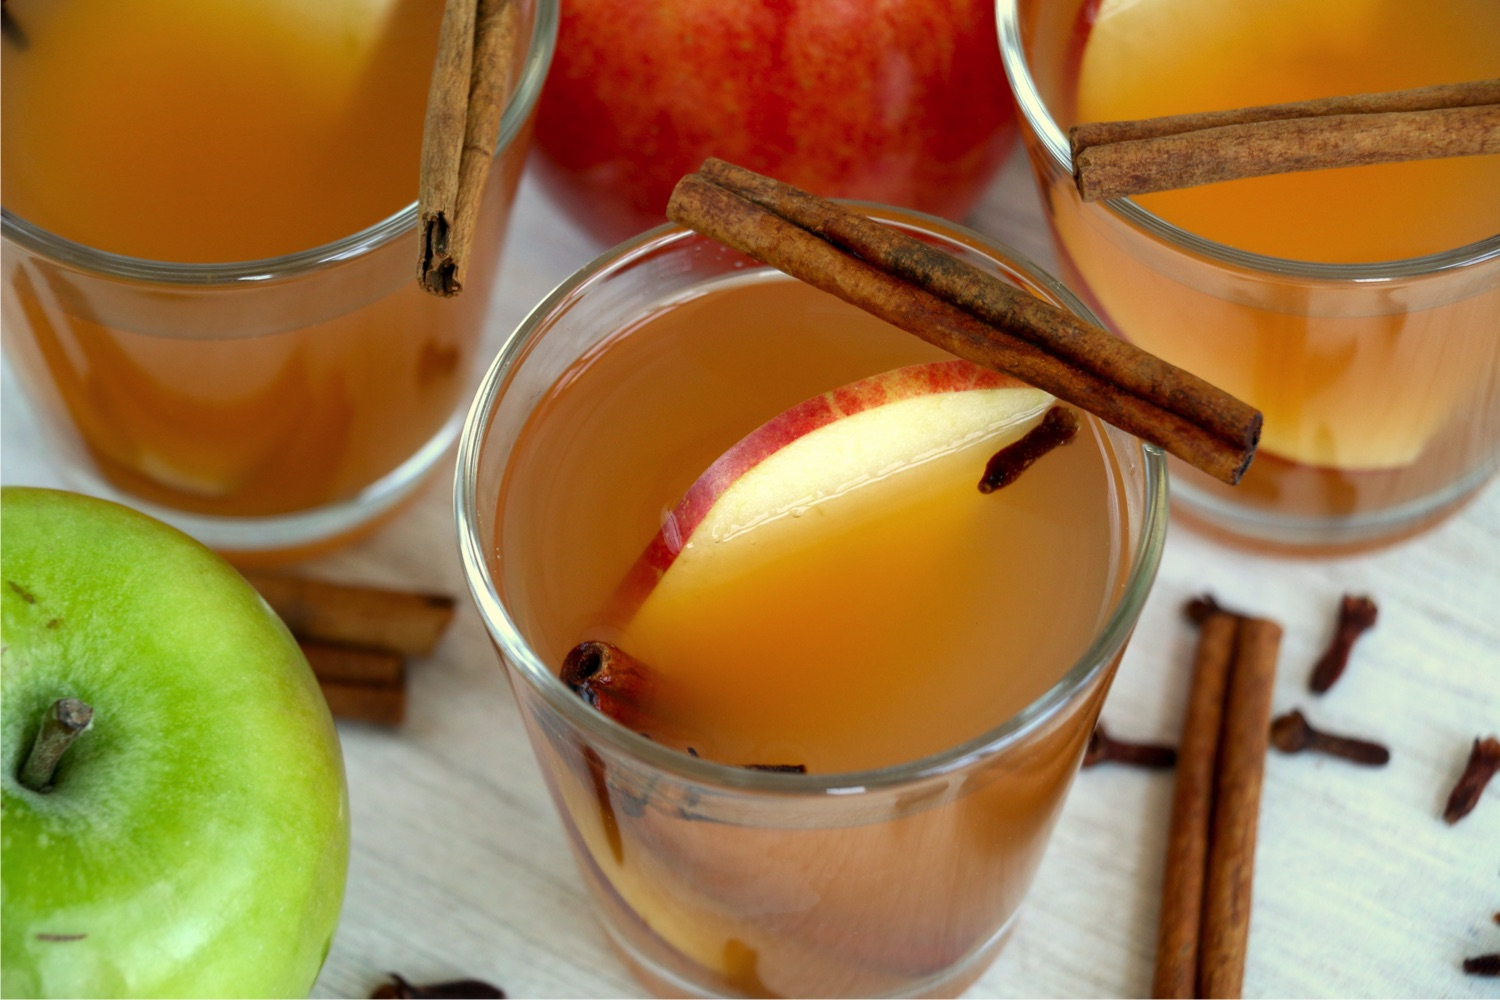 glass of apple cider garnished with apple slices and cinnamon sticks